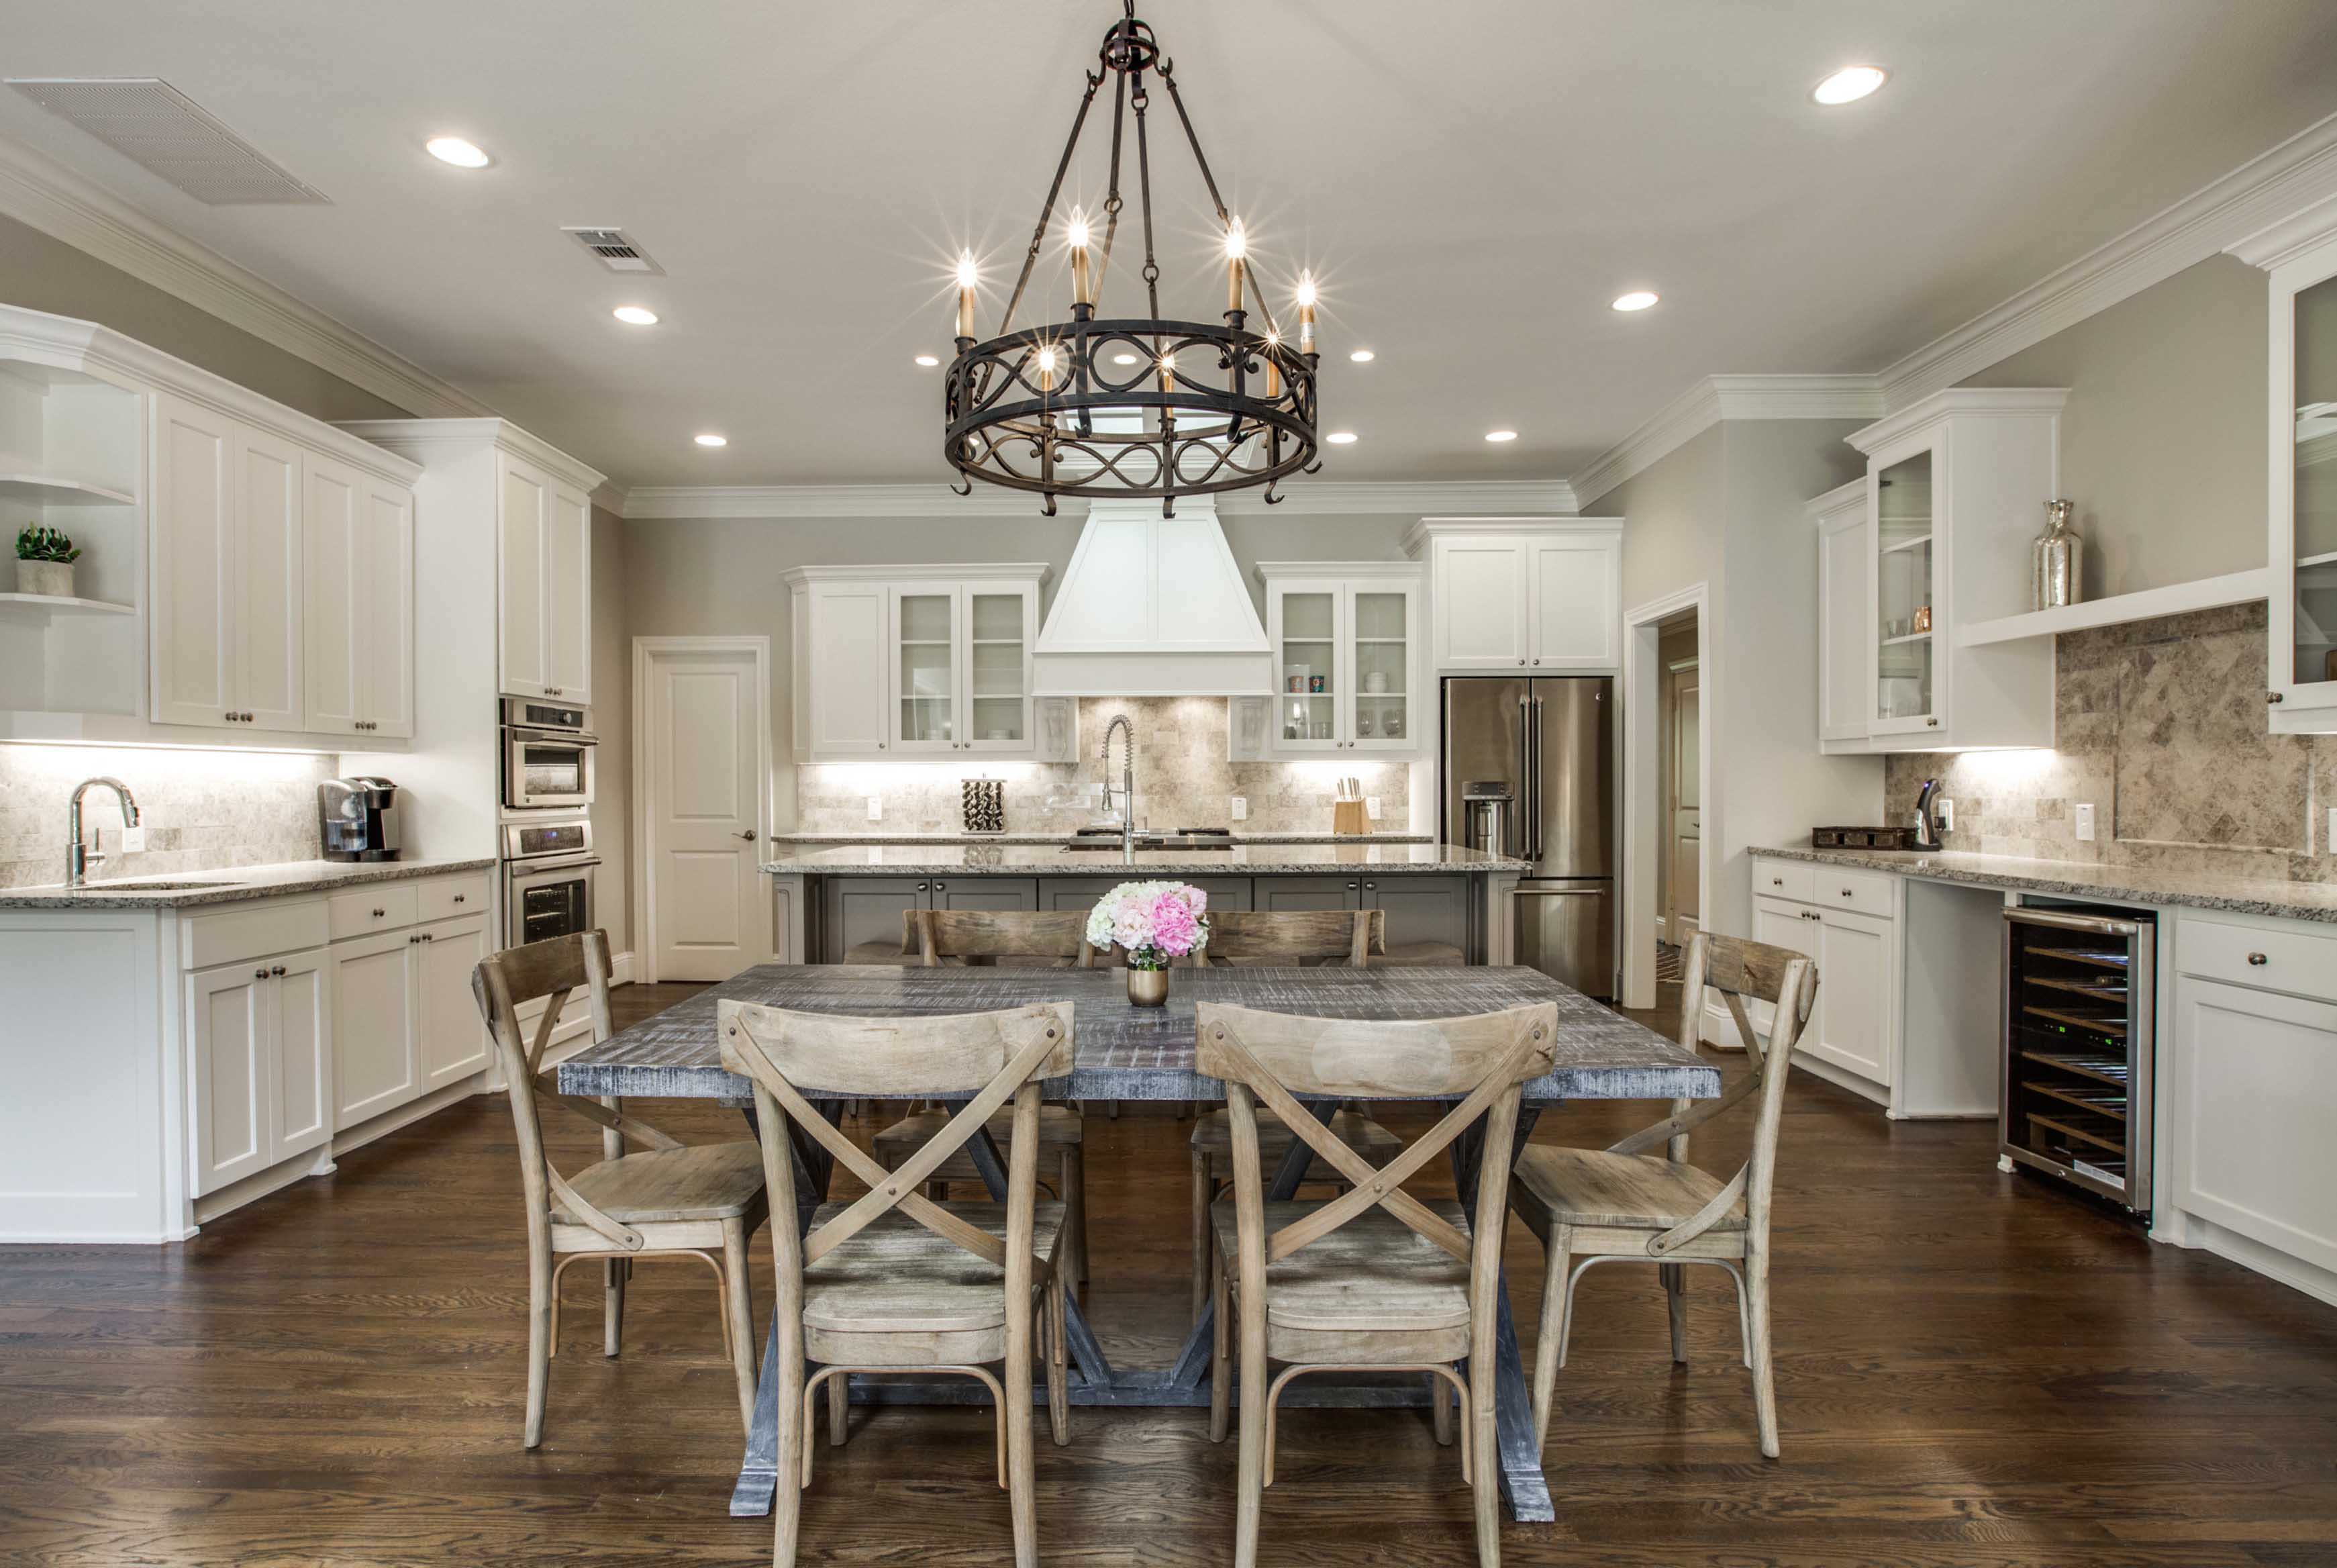 remodels|construction|custom homes | real estate dallas, tx